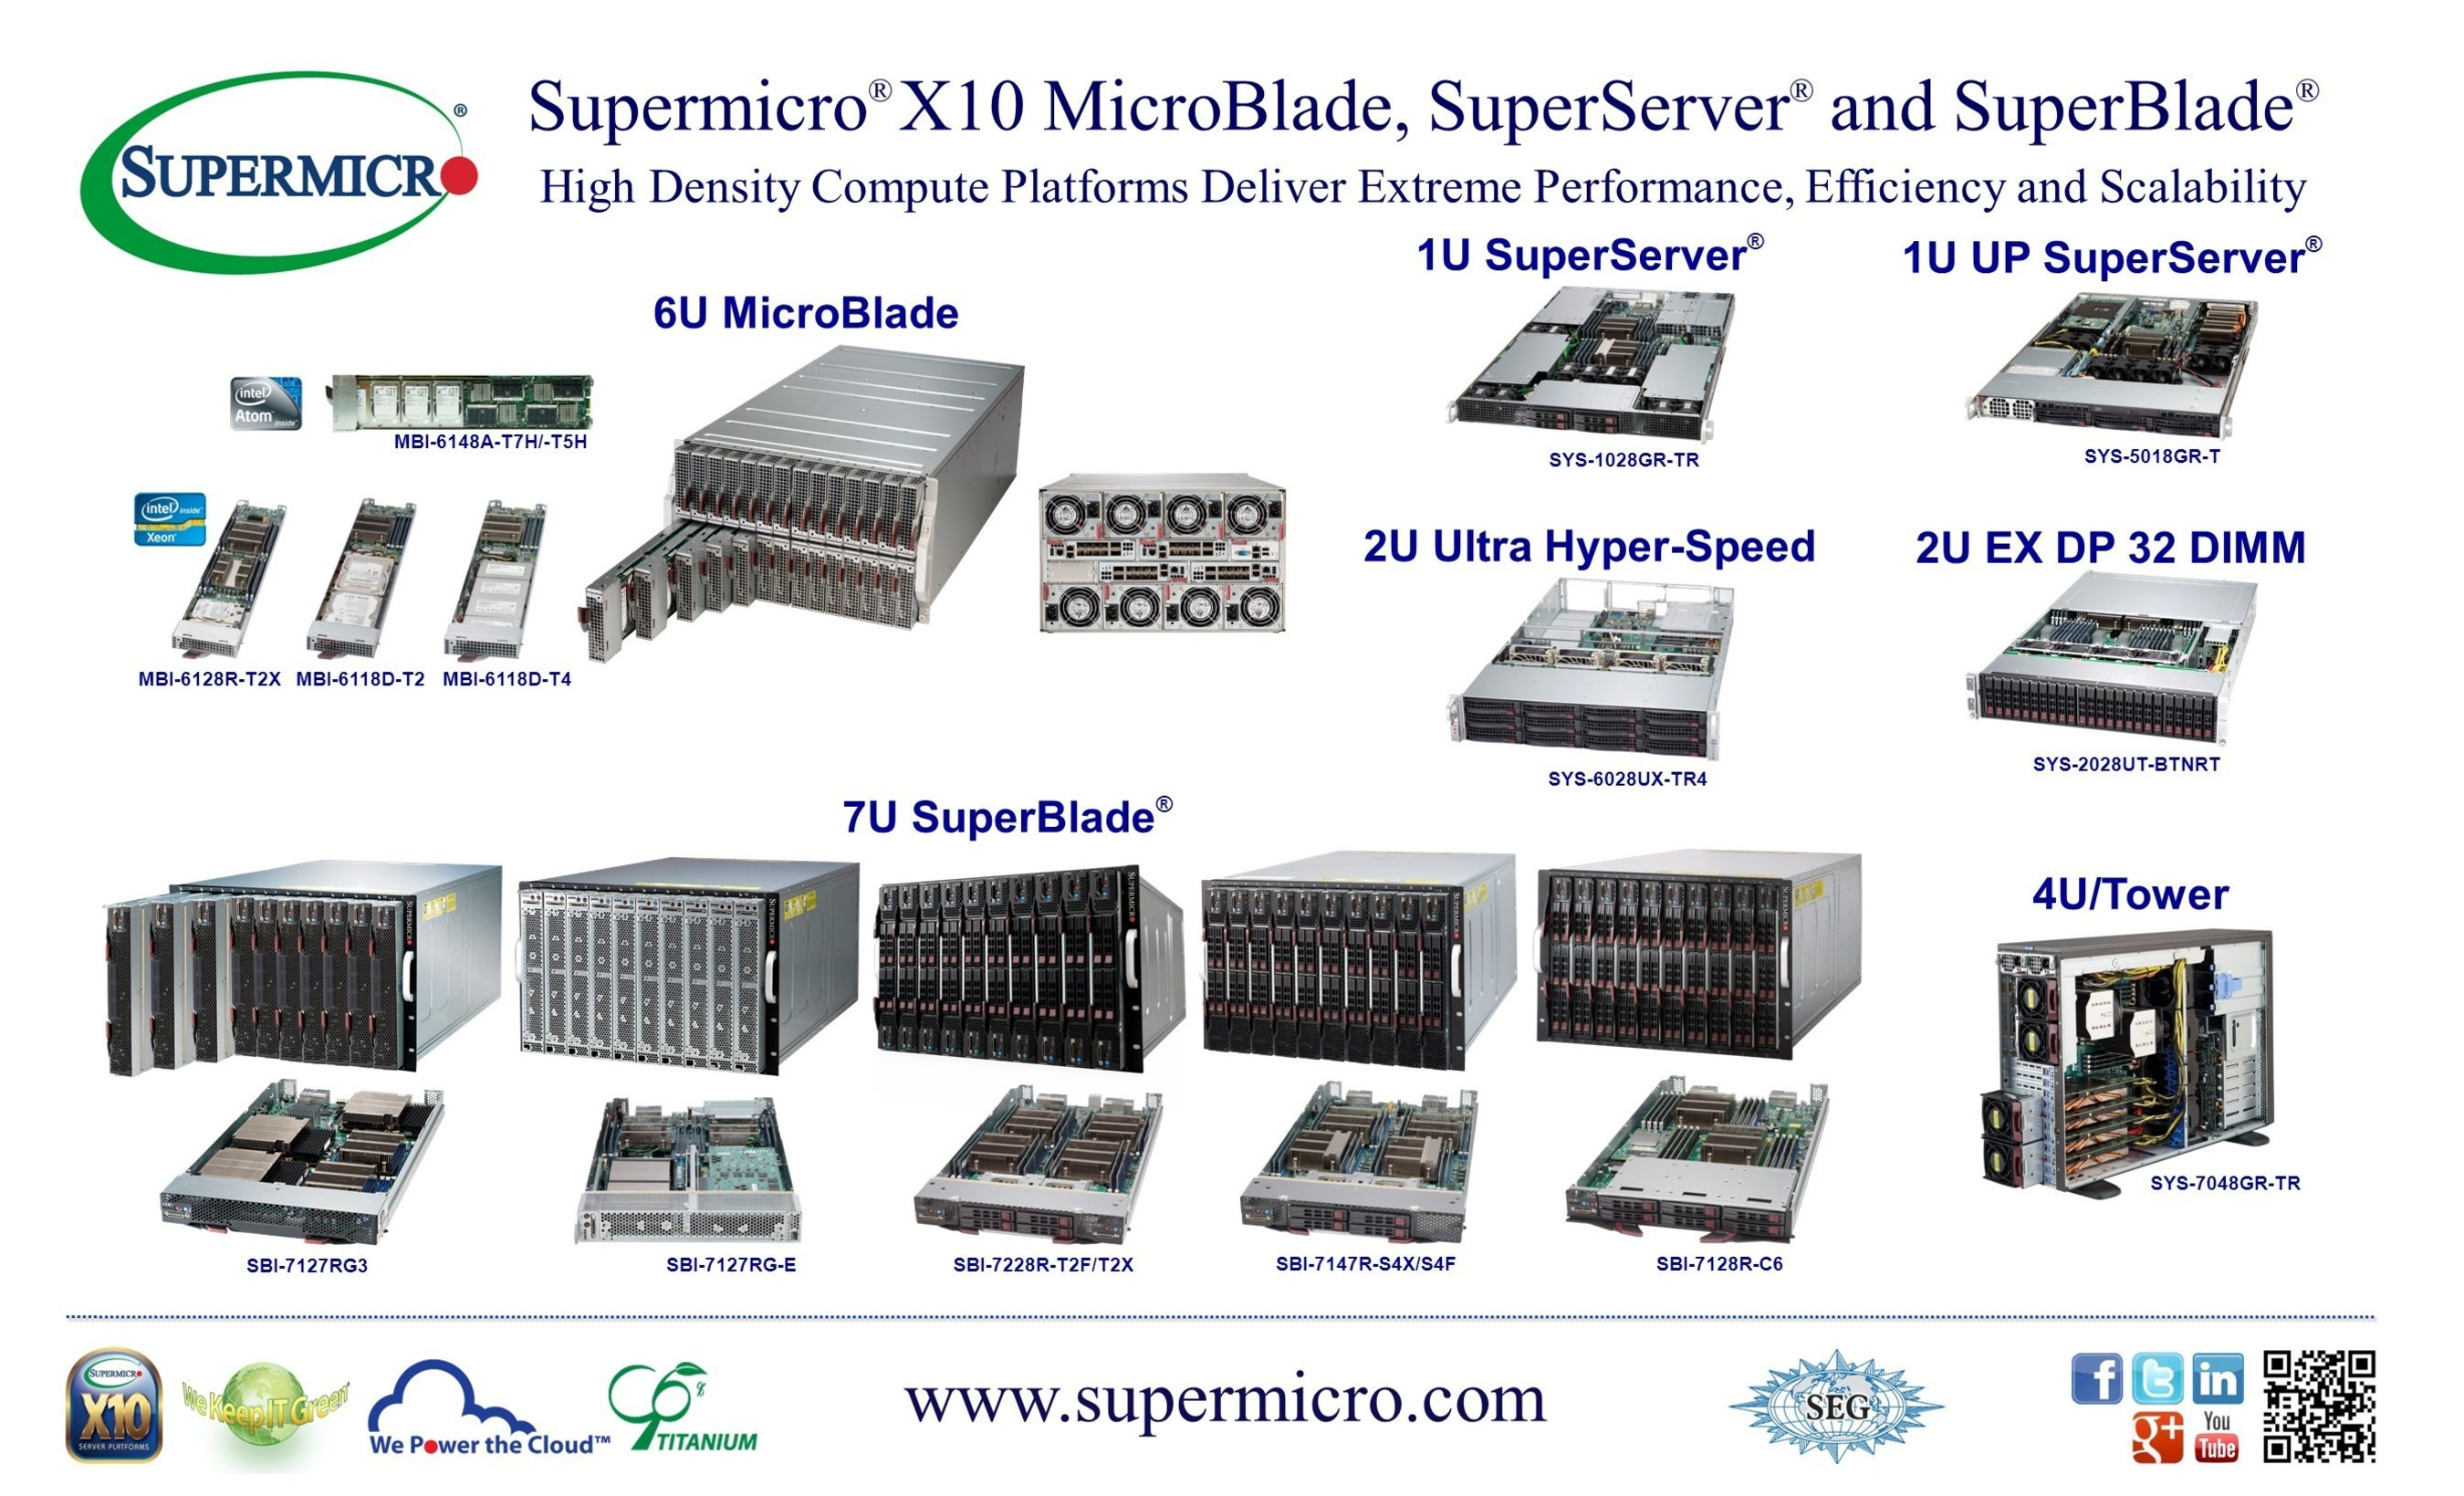 Supermicro(R) X10 MicroBlade, SuperServer(R) and SuperBlade(R) @ SEG '14